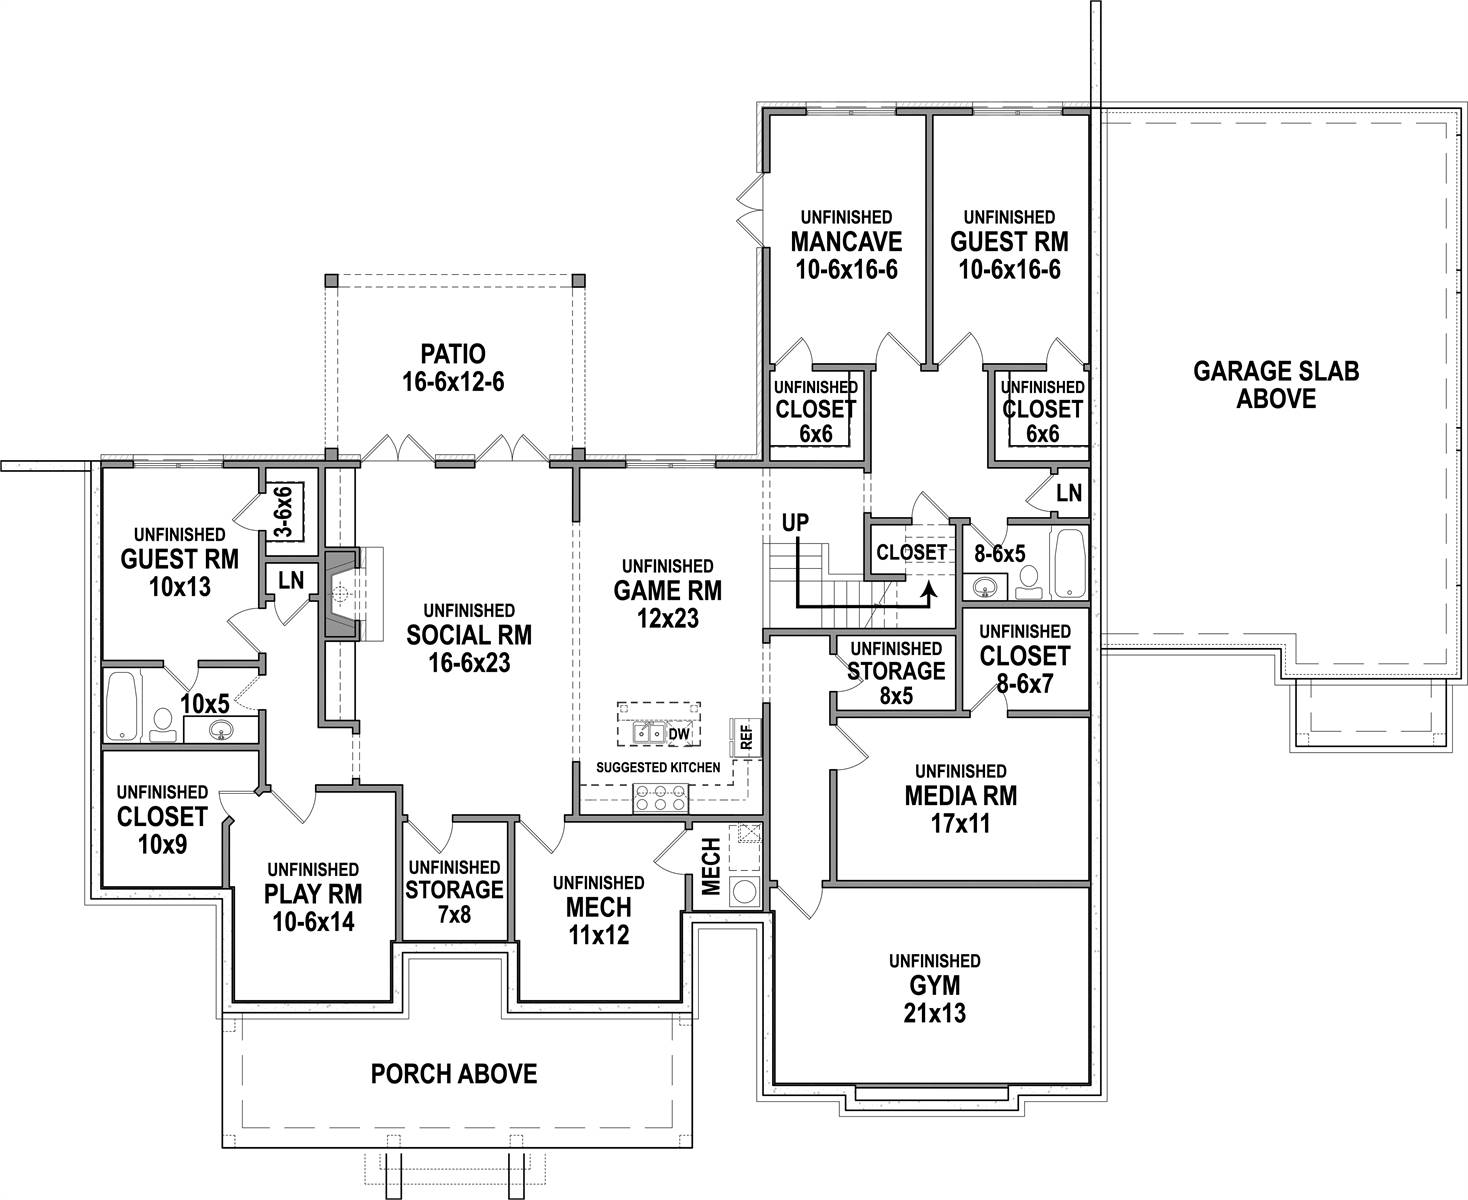 Basement Floor Plan image of Featured House Plan: BHG - 7382